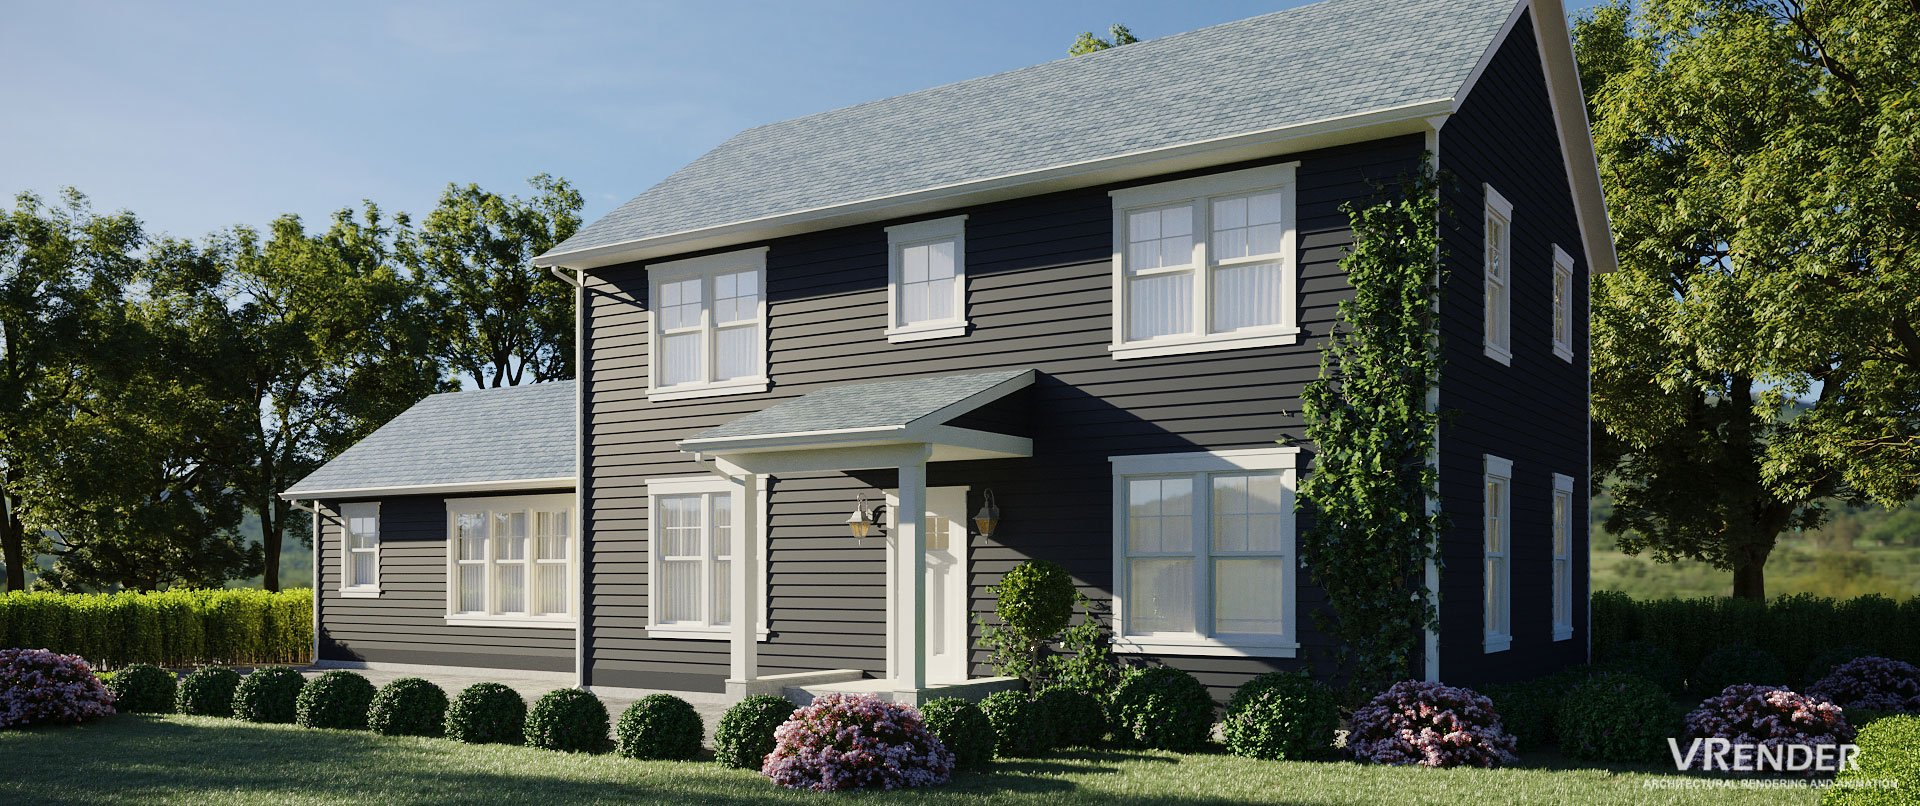 Vrender 3d rendering services Contact